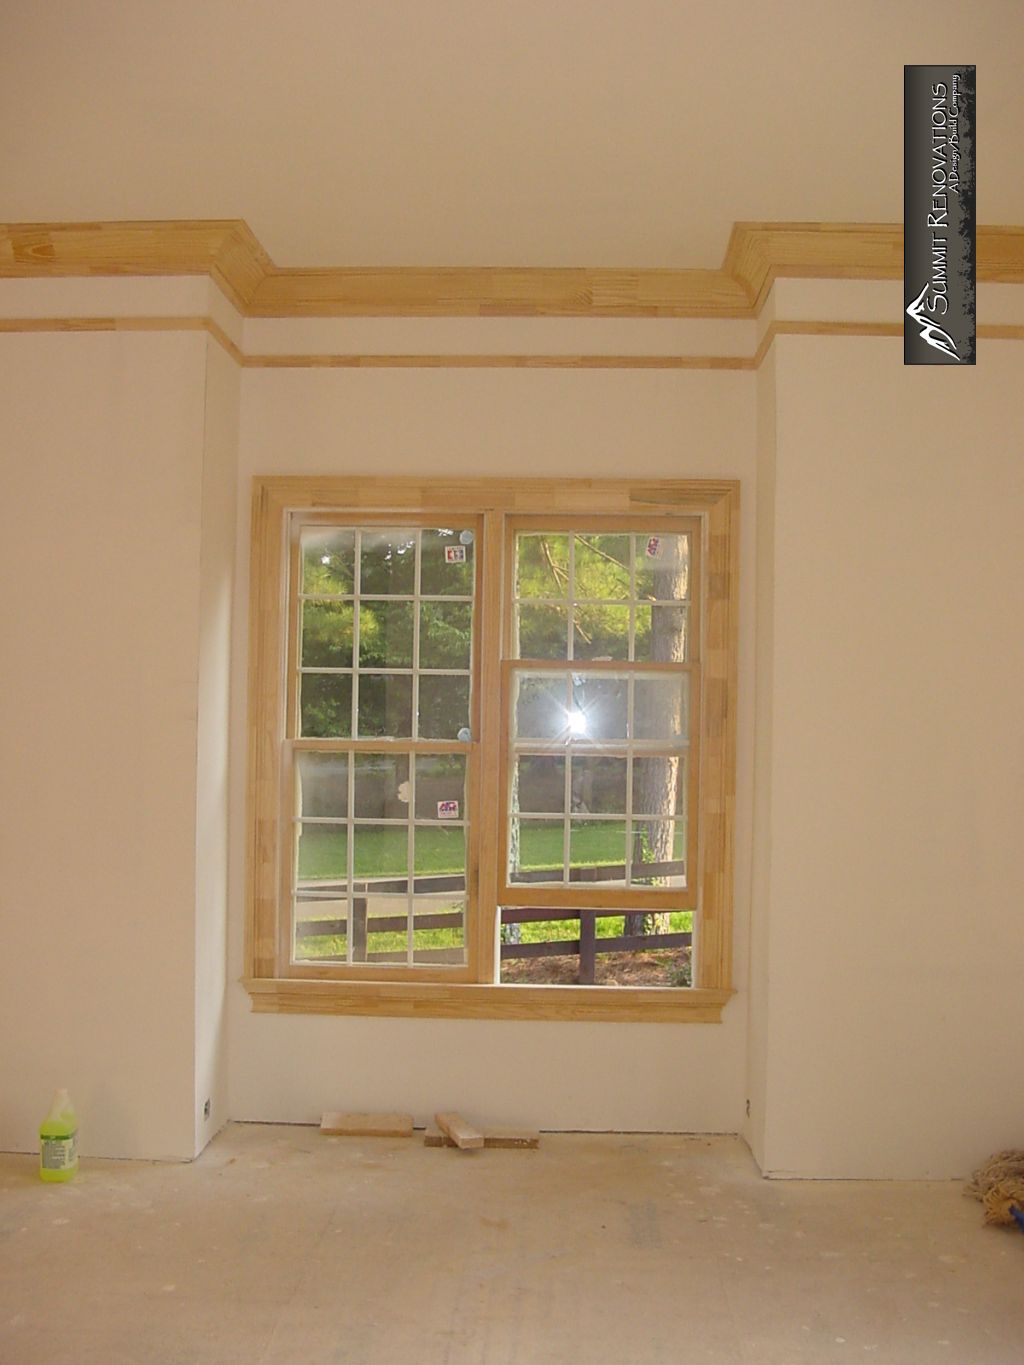 three-piece-cove-crown-application-with-lower-cap-howe-window-casing